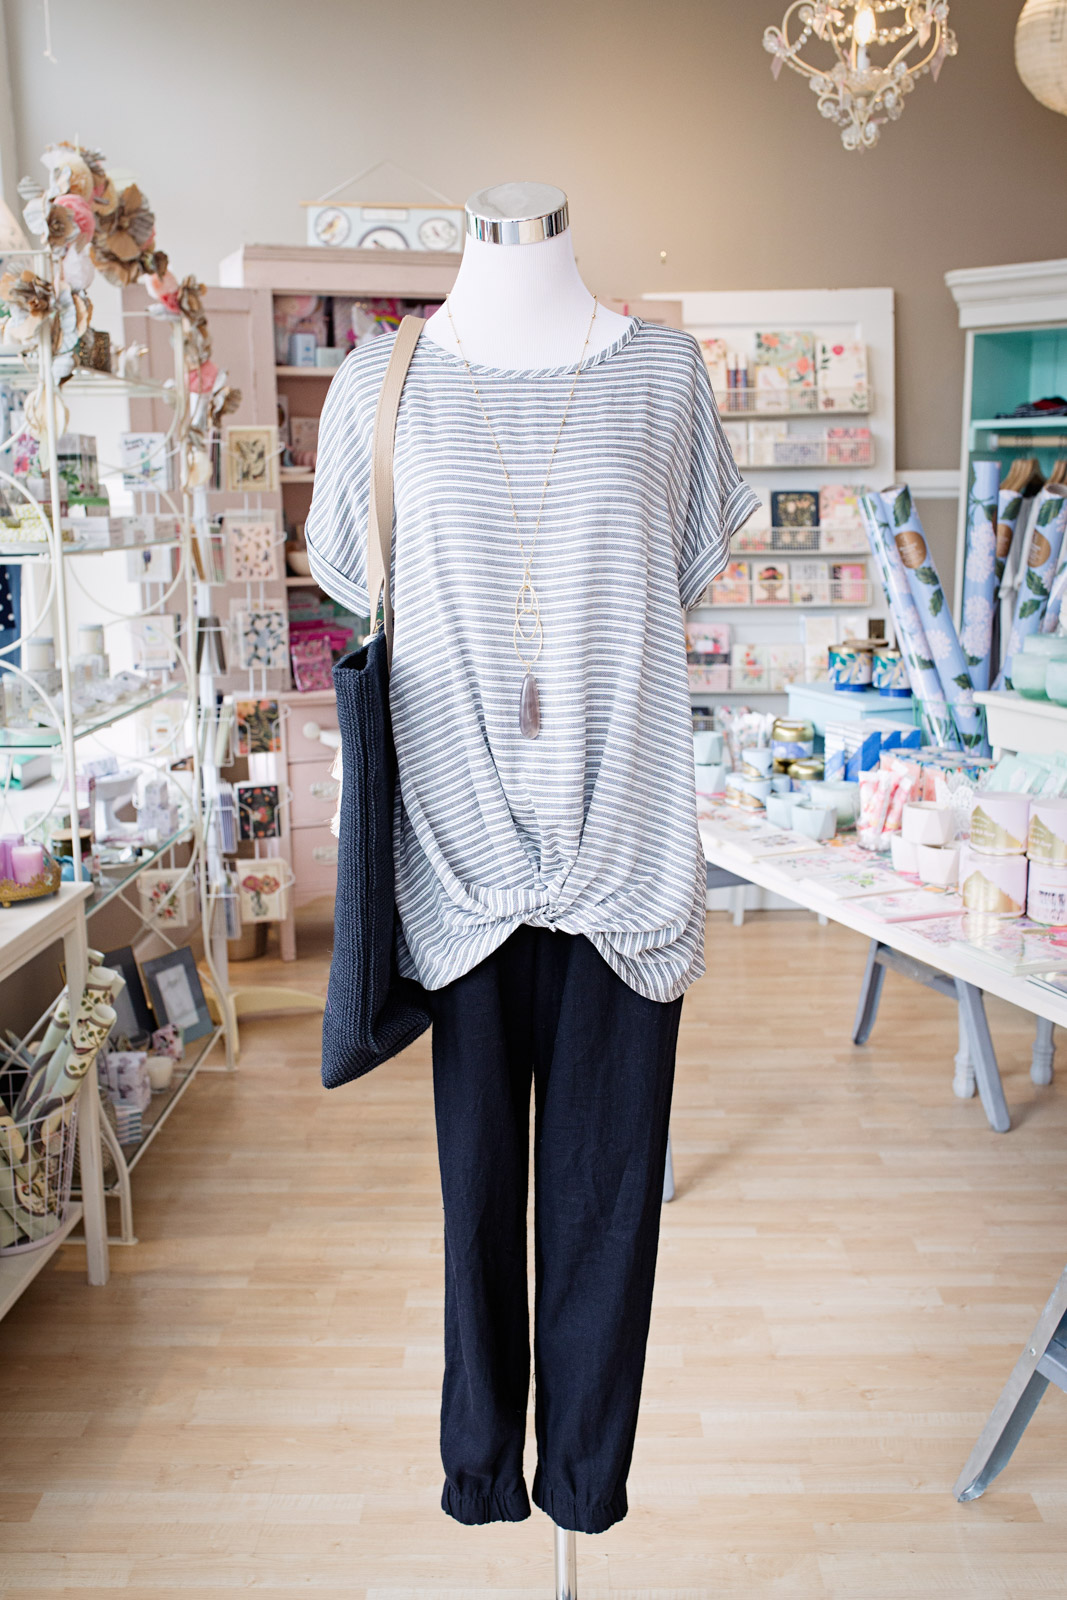 Meadow boutique seattle retail clothing store Yuliya Rae photography branding services-36.jpg